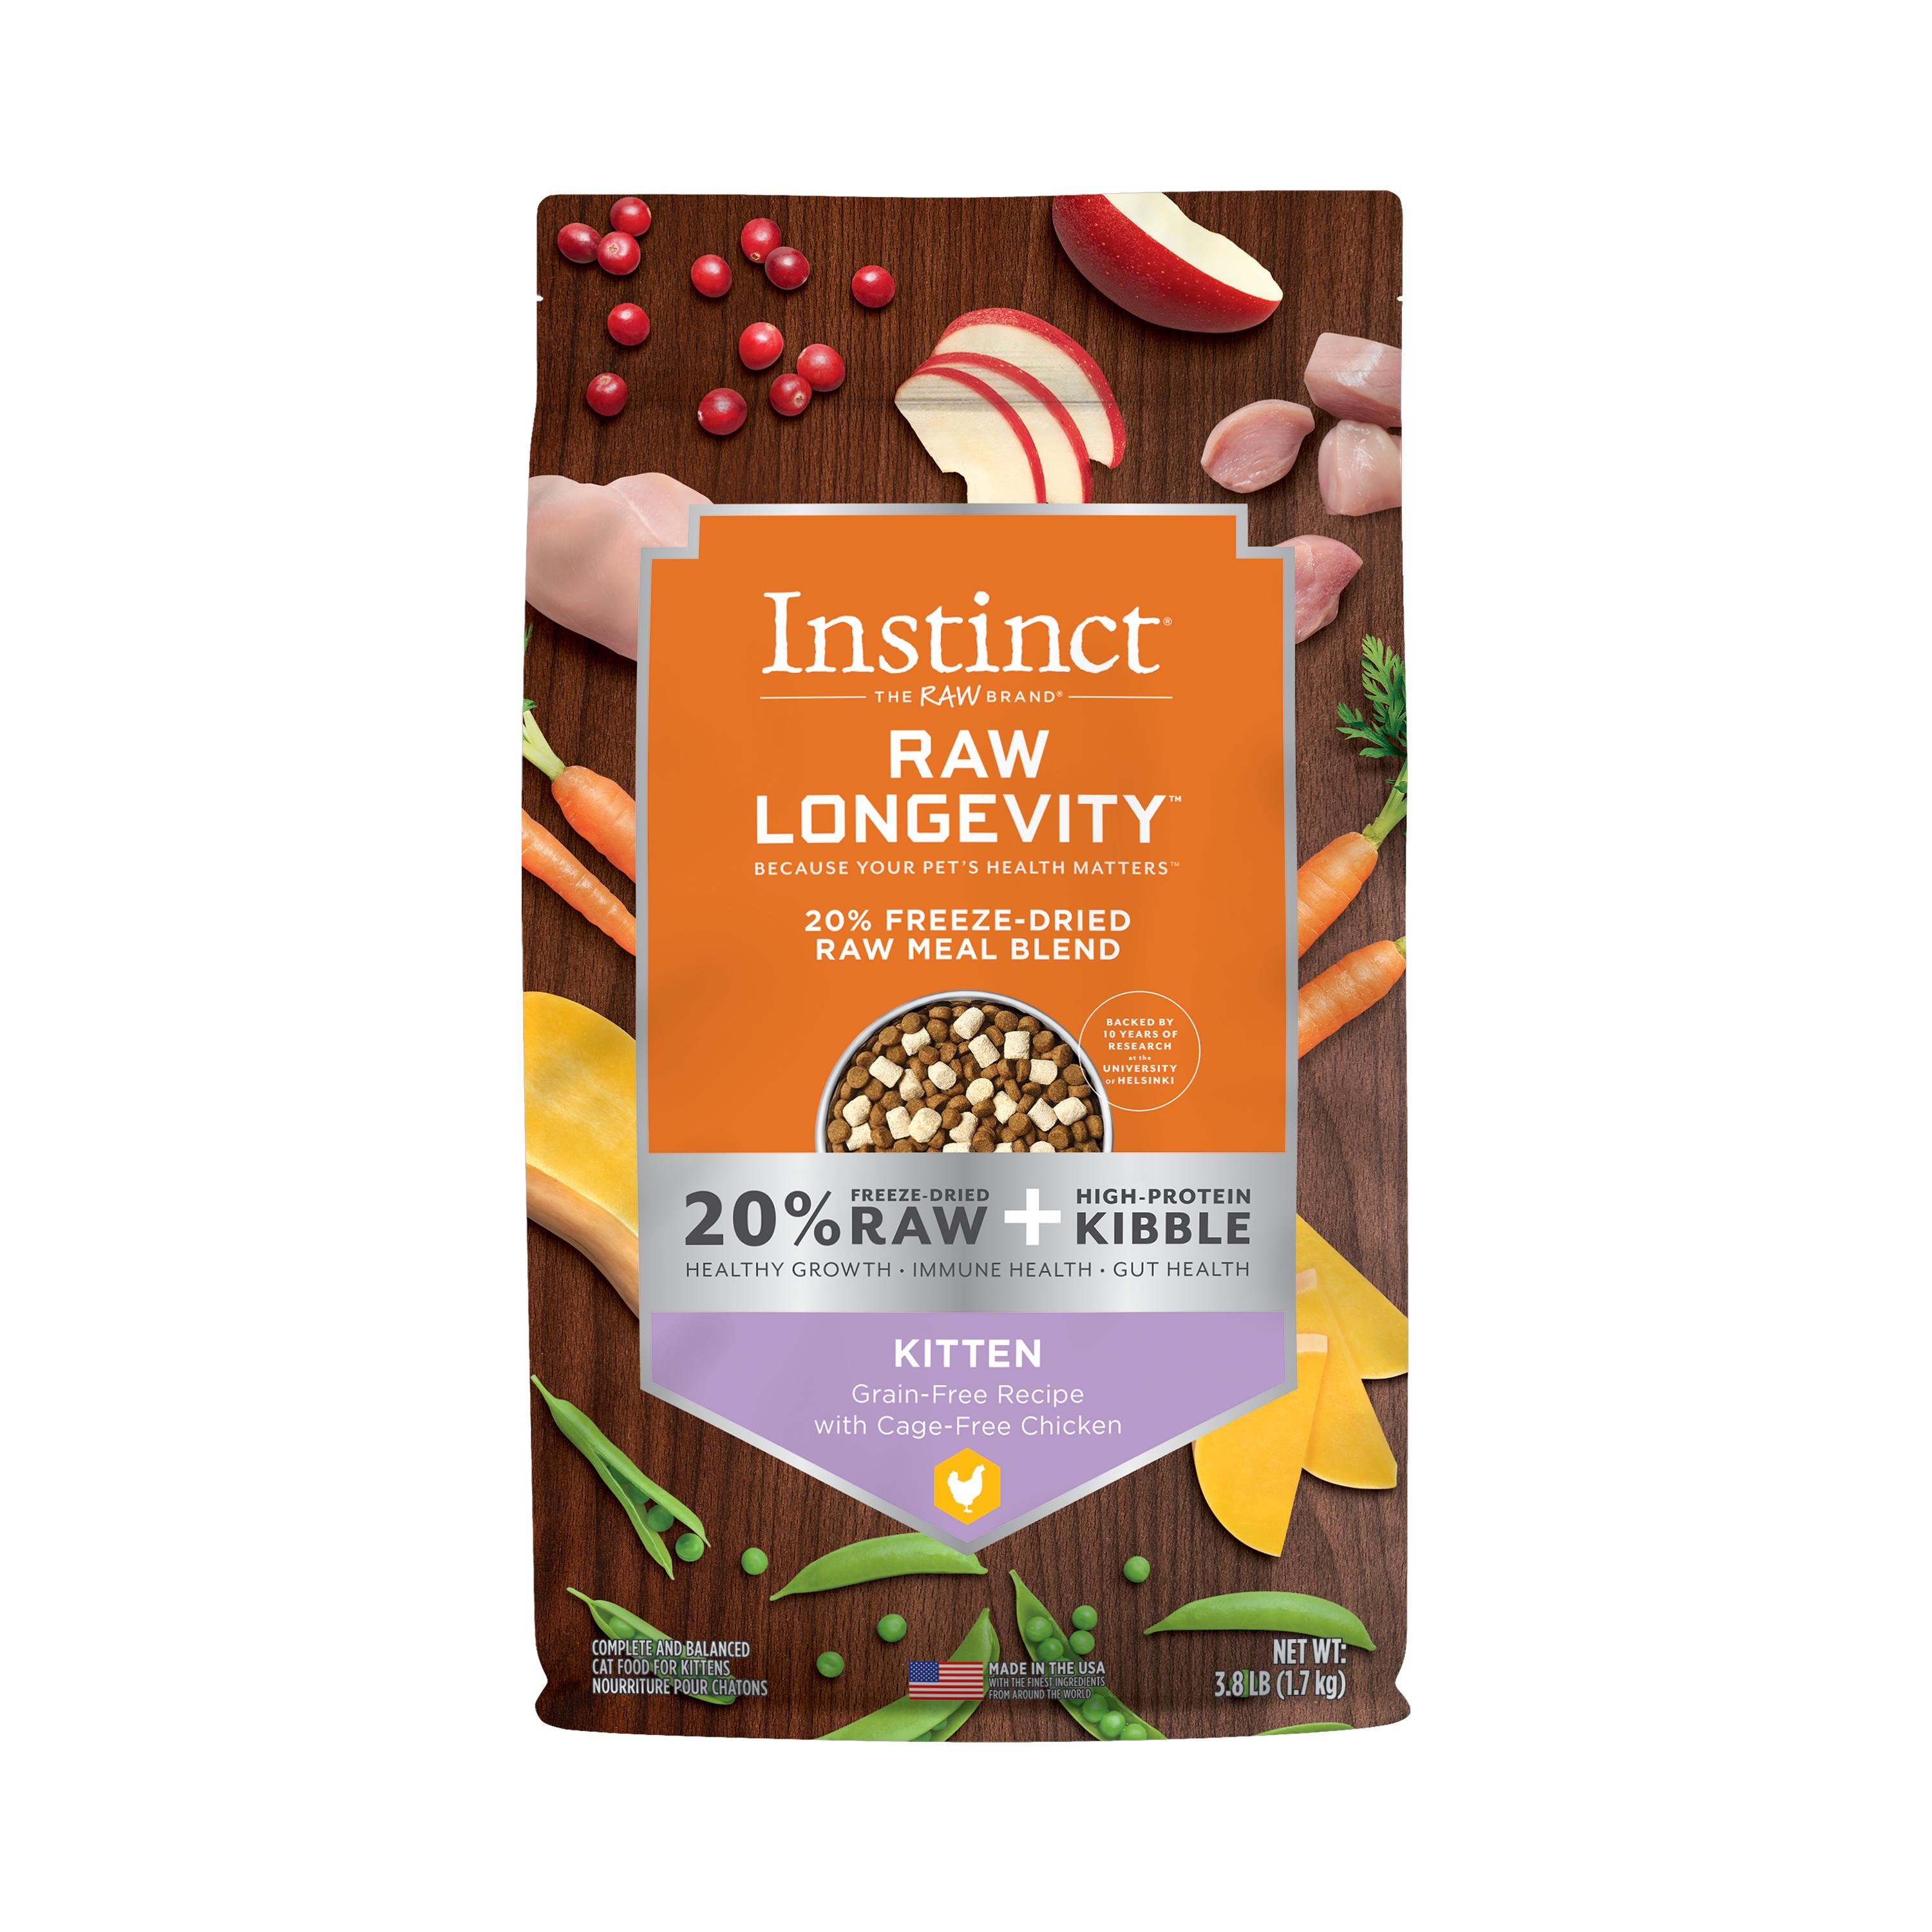 Instinct by Nature's Variety Raw Longevity Grain-Free Recipe with Cage-Free Chicken Kitten 20% Freeze-Dried Cat Food, 3.8-lb